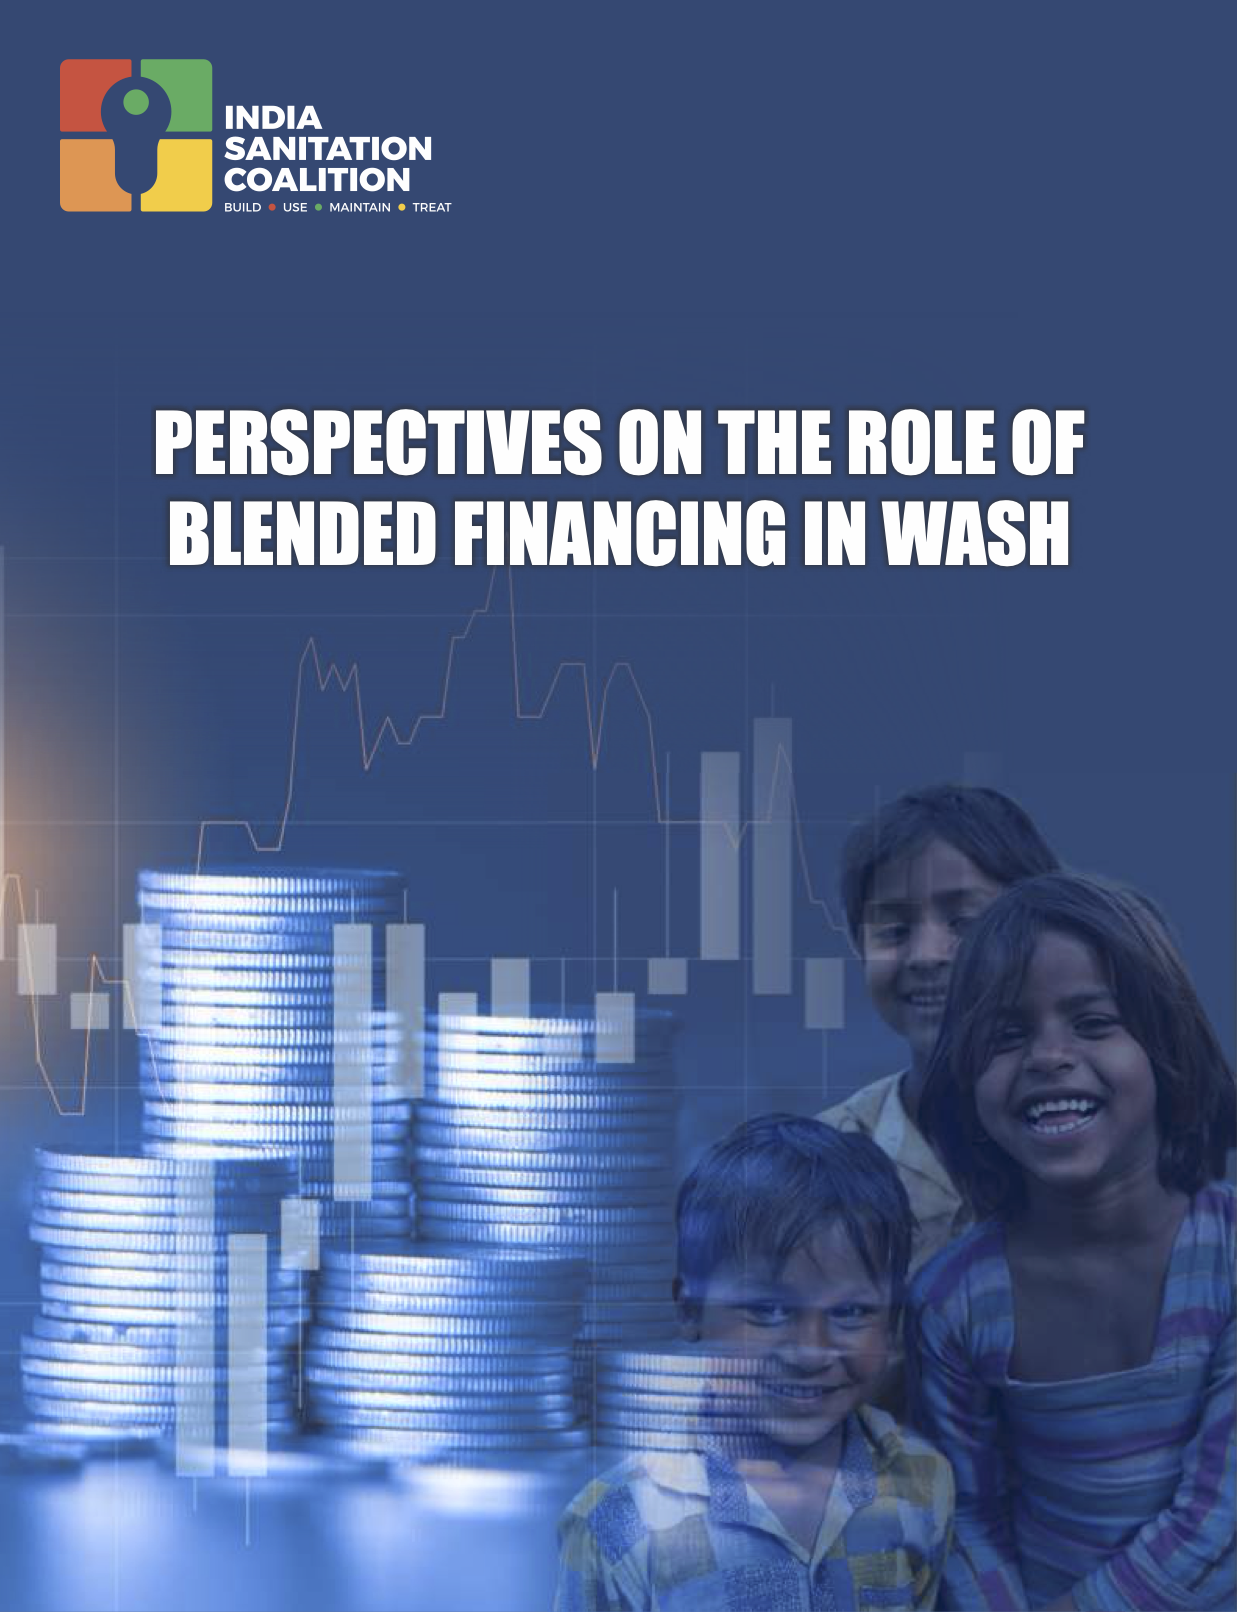 Perspectives on the Role of Blended Financing in WASH